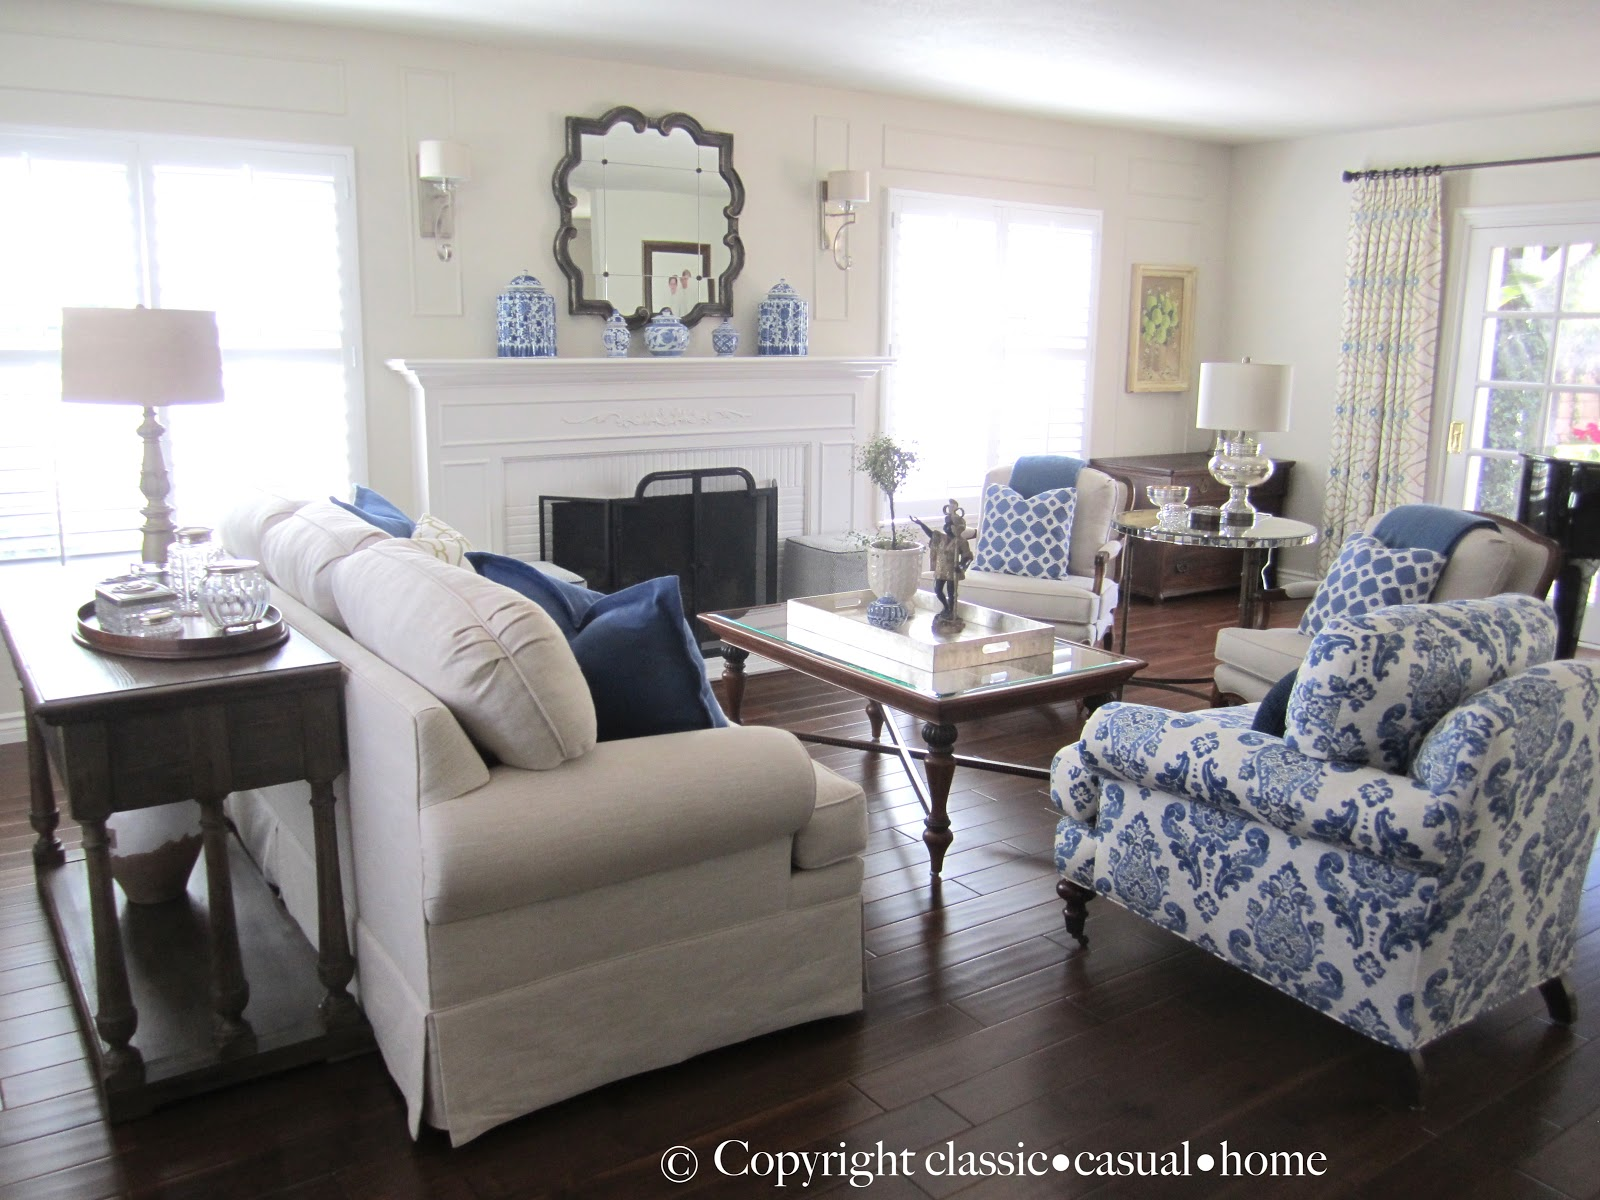 Blue, White and Silver: Timeless Design - Classic Casual Home